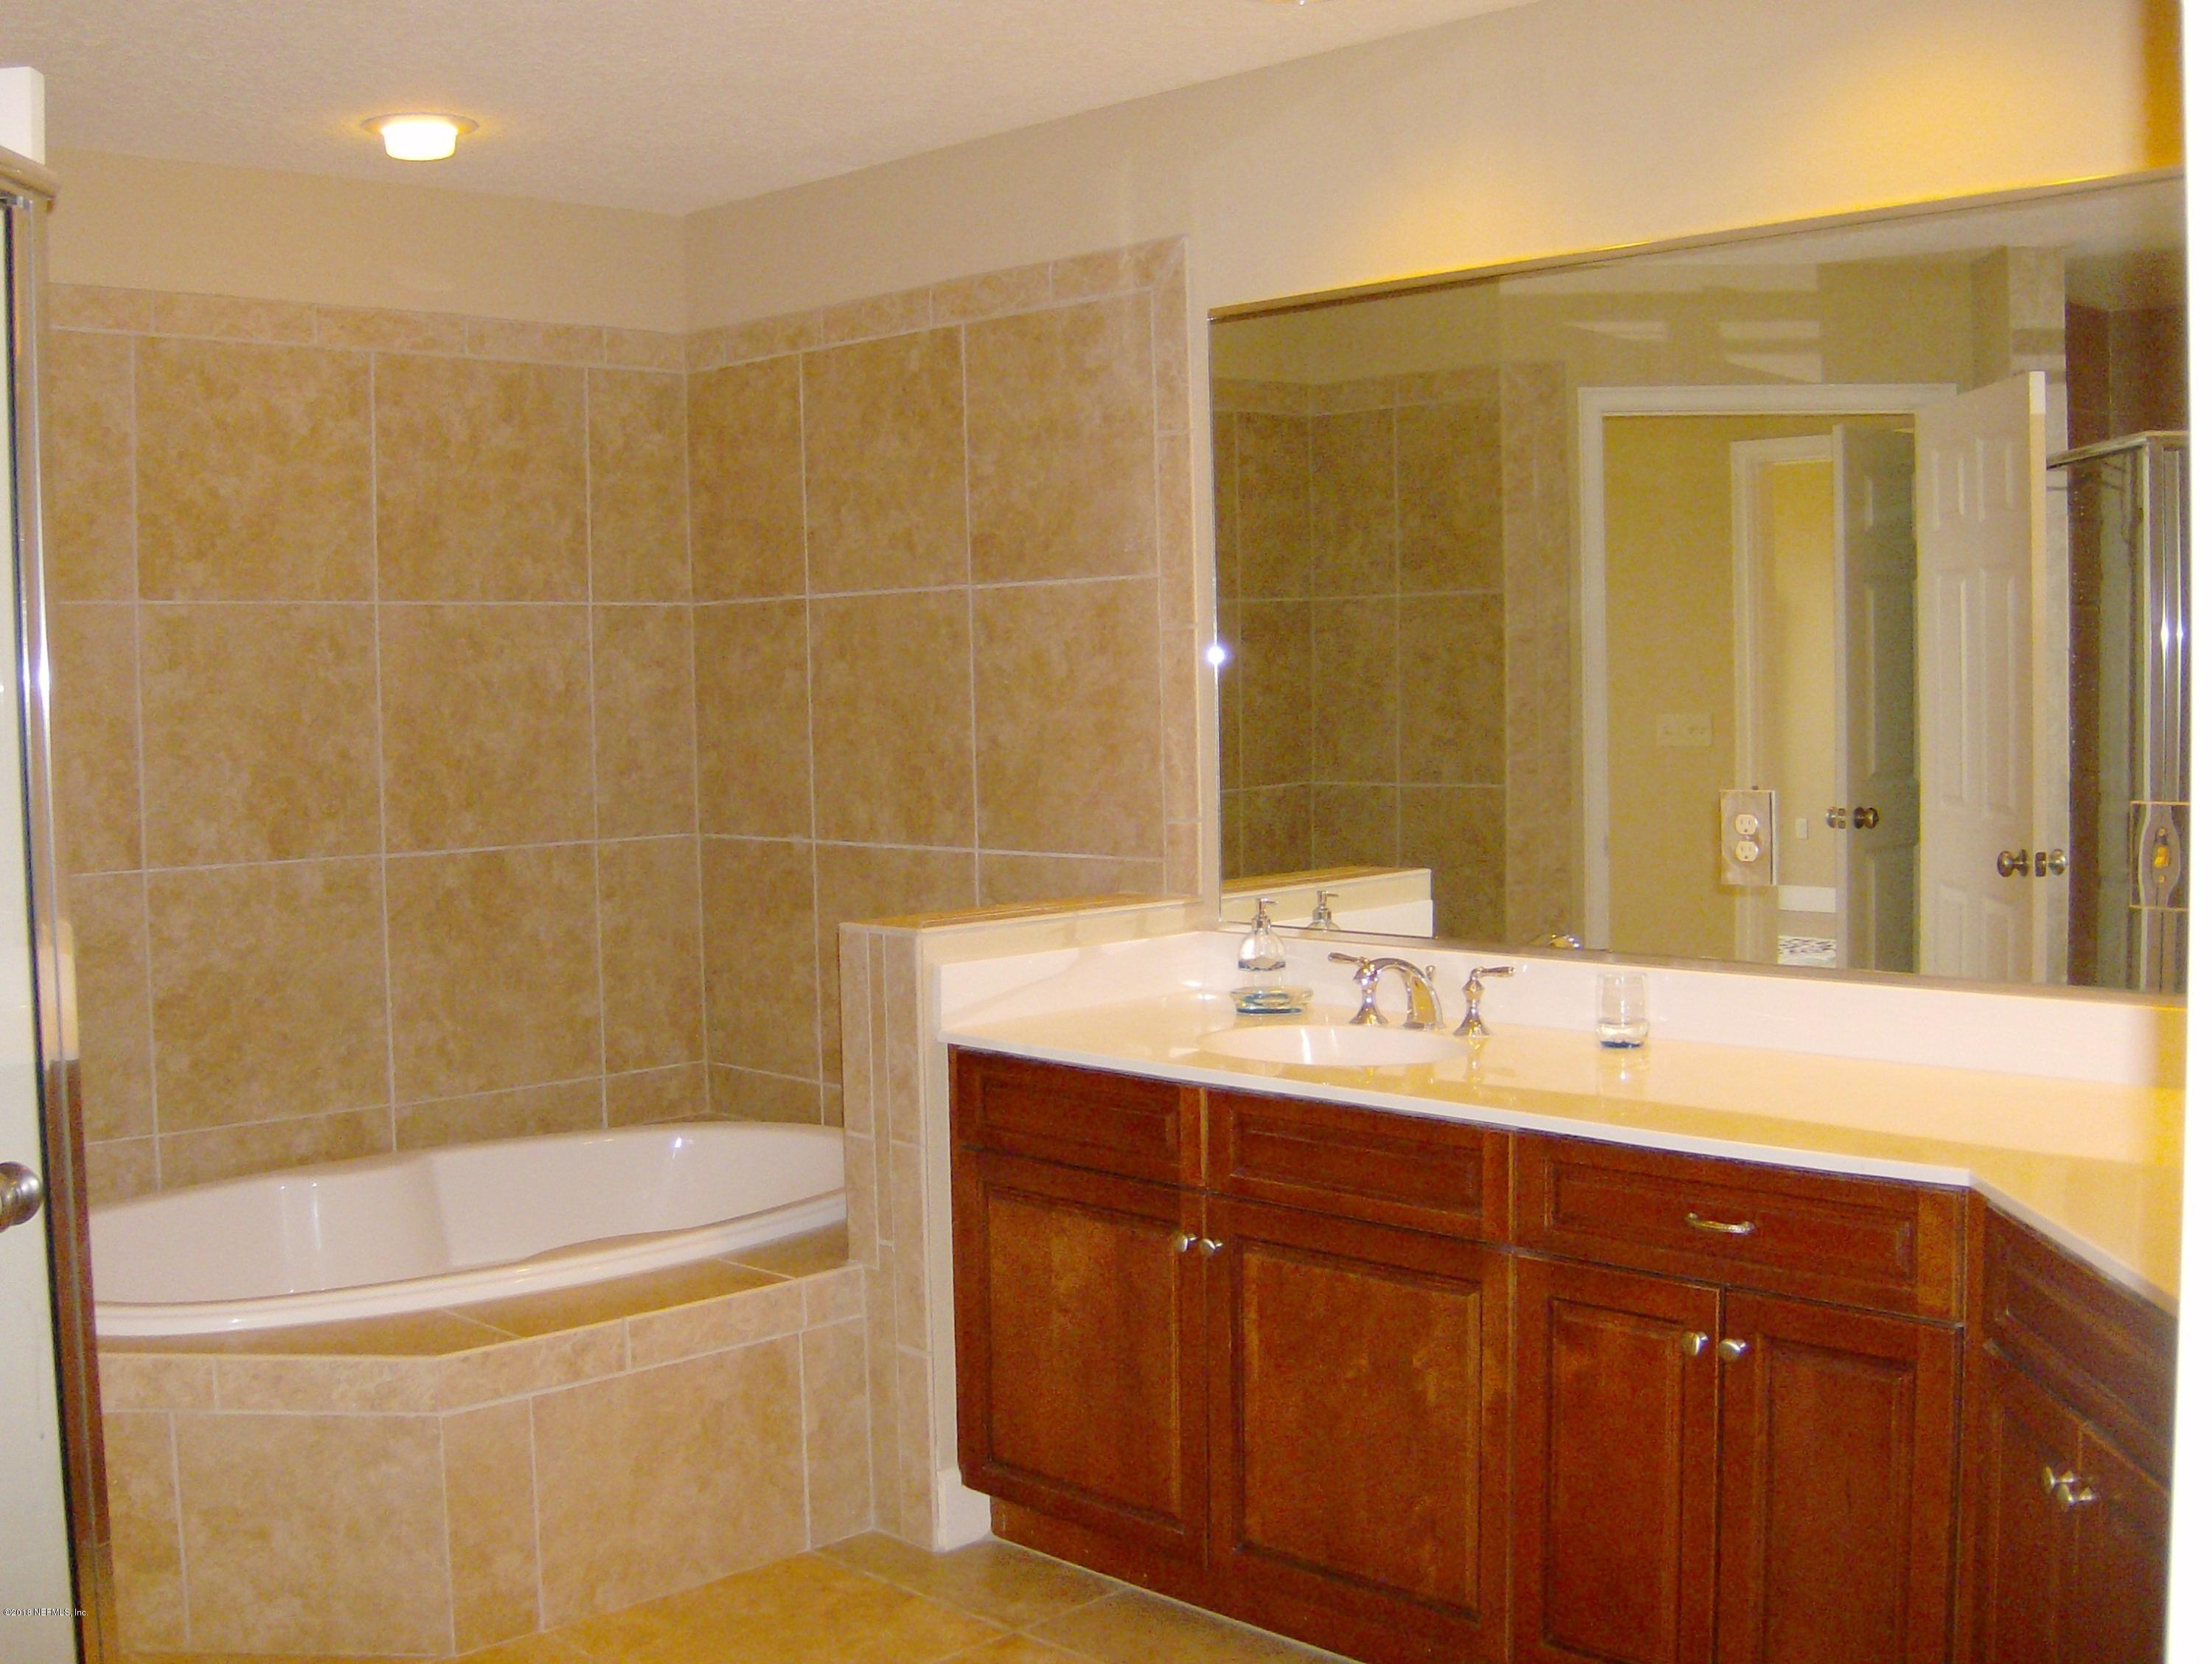 1478 RIVERPLACE, JACKSONVILLE, FLORIDA 32207, 1 Bedroom Bedrooms, ,1 BathroomBathrooms,Condo,For sale,RIVERPLACE,964900